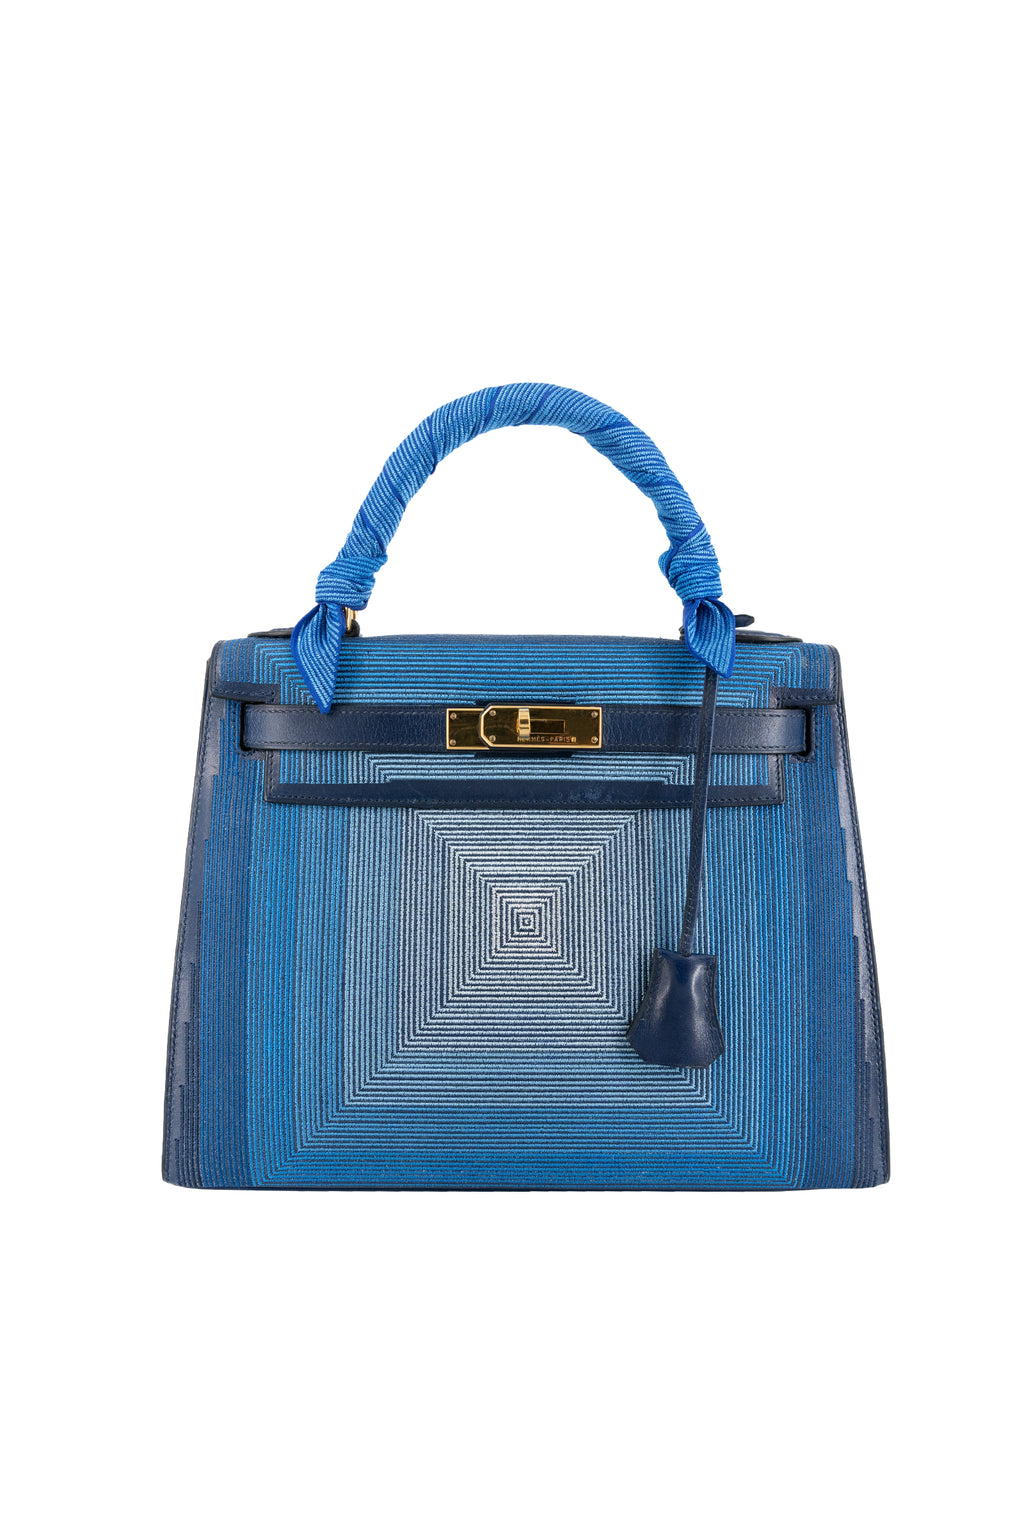 JAY AHR | Geometric Act I - Hermes Kelly 28